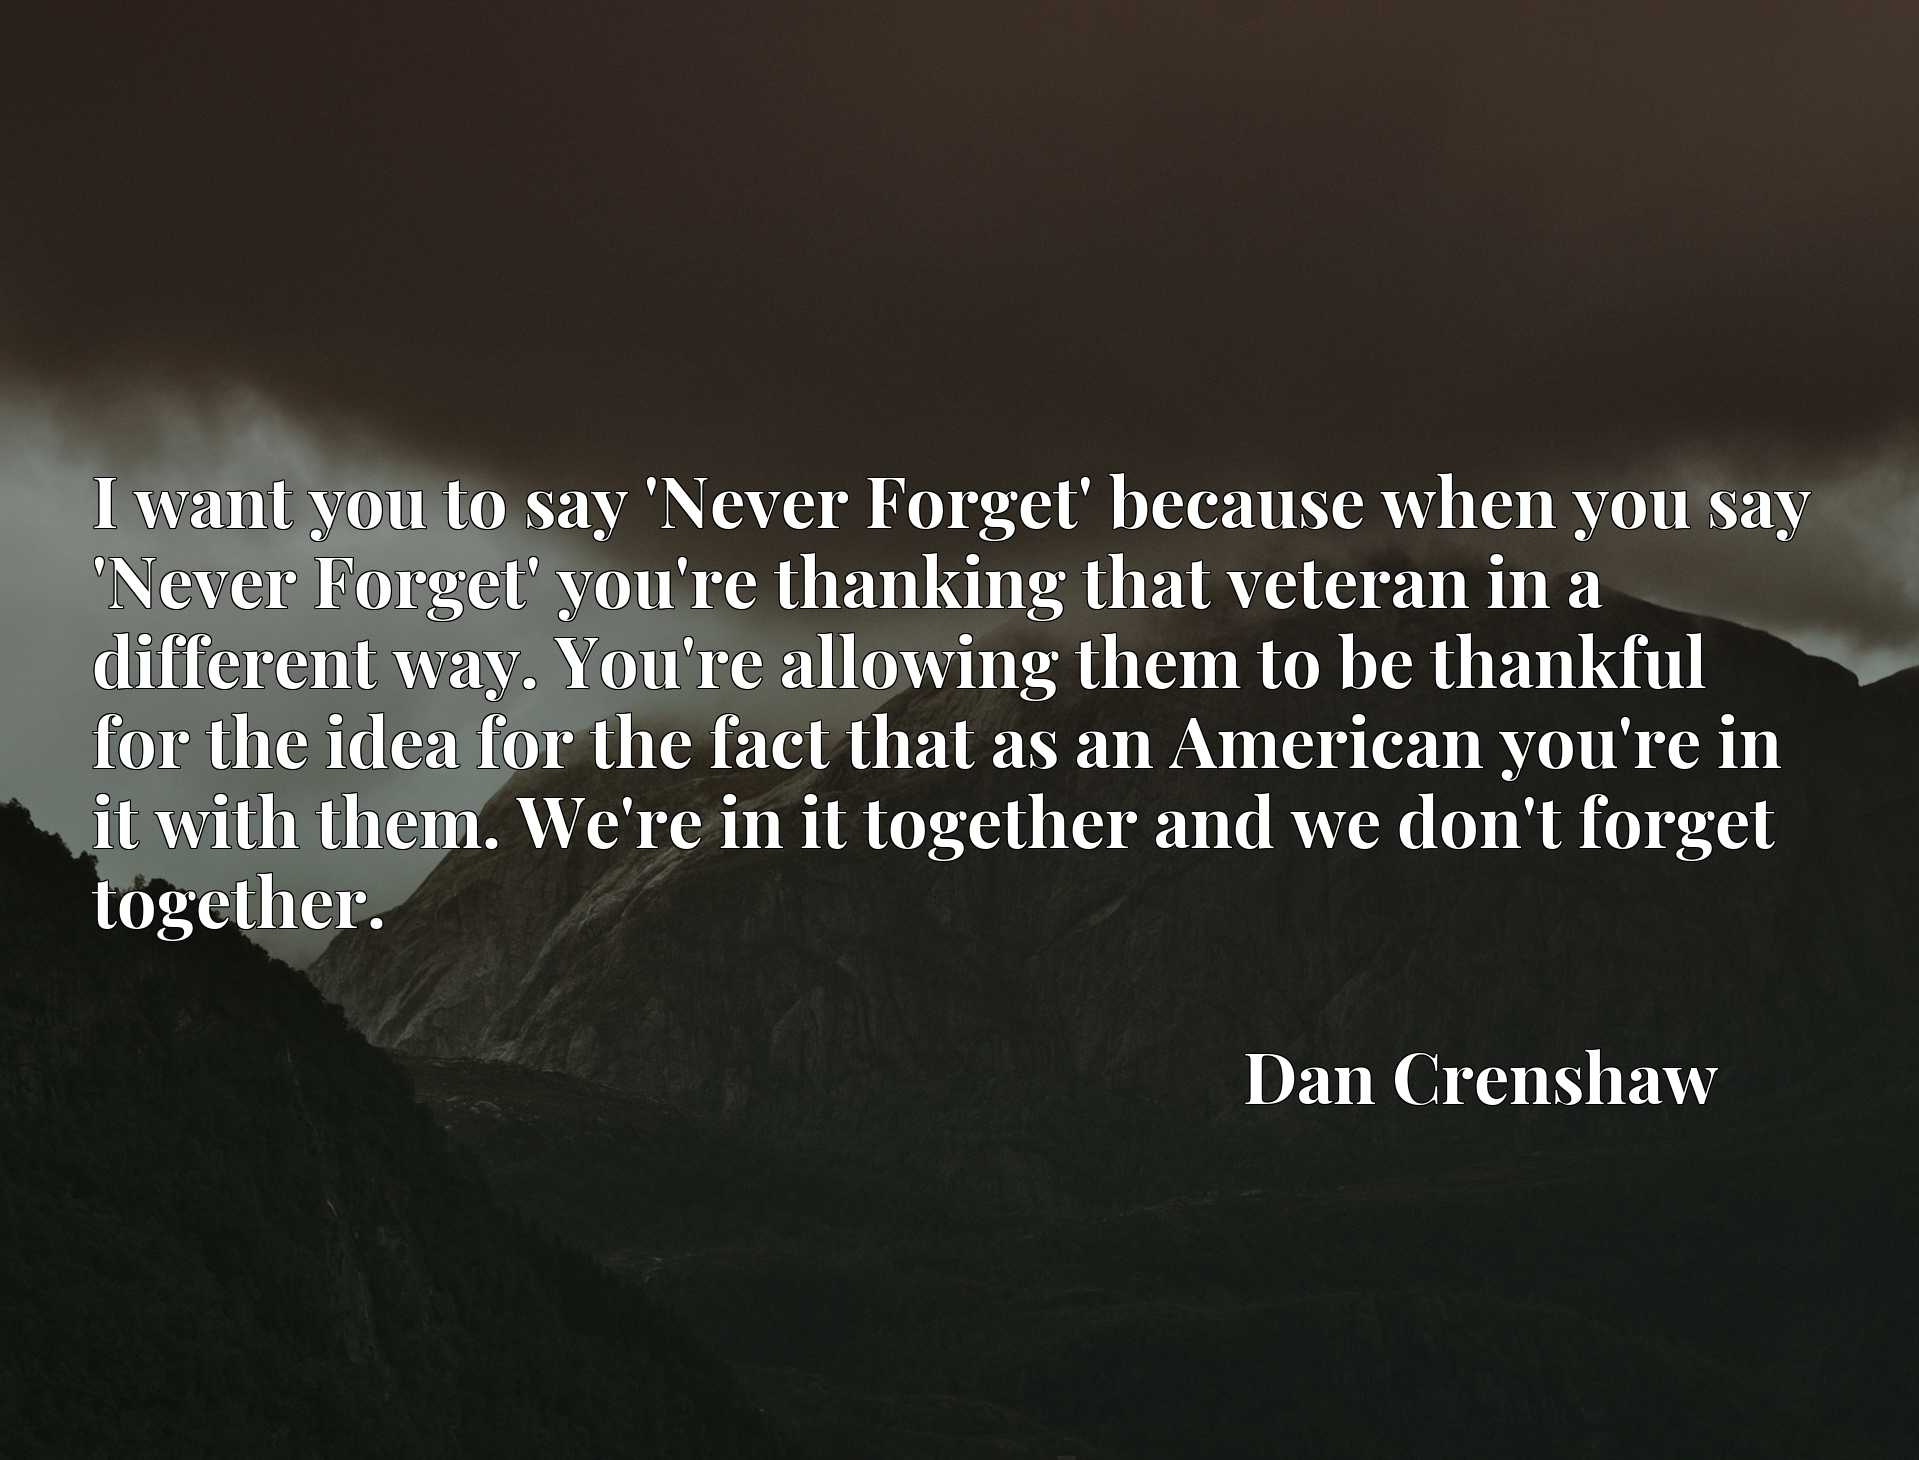 I want you to say 'Never Forget' because when you say 'Never Forget' you're thanking that veteran in a different way. You're allowing them to be thankful for the idea for the fact that as an American you're in it with them. We're in it together and we don't forget together.